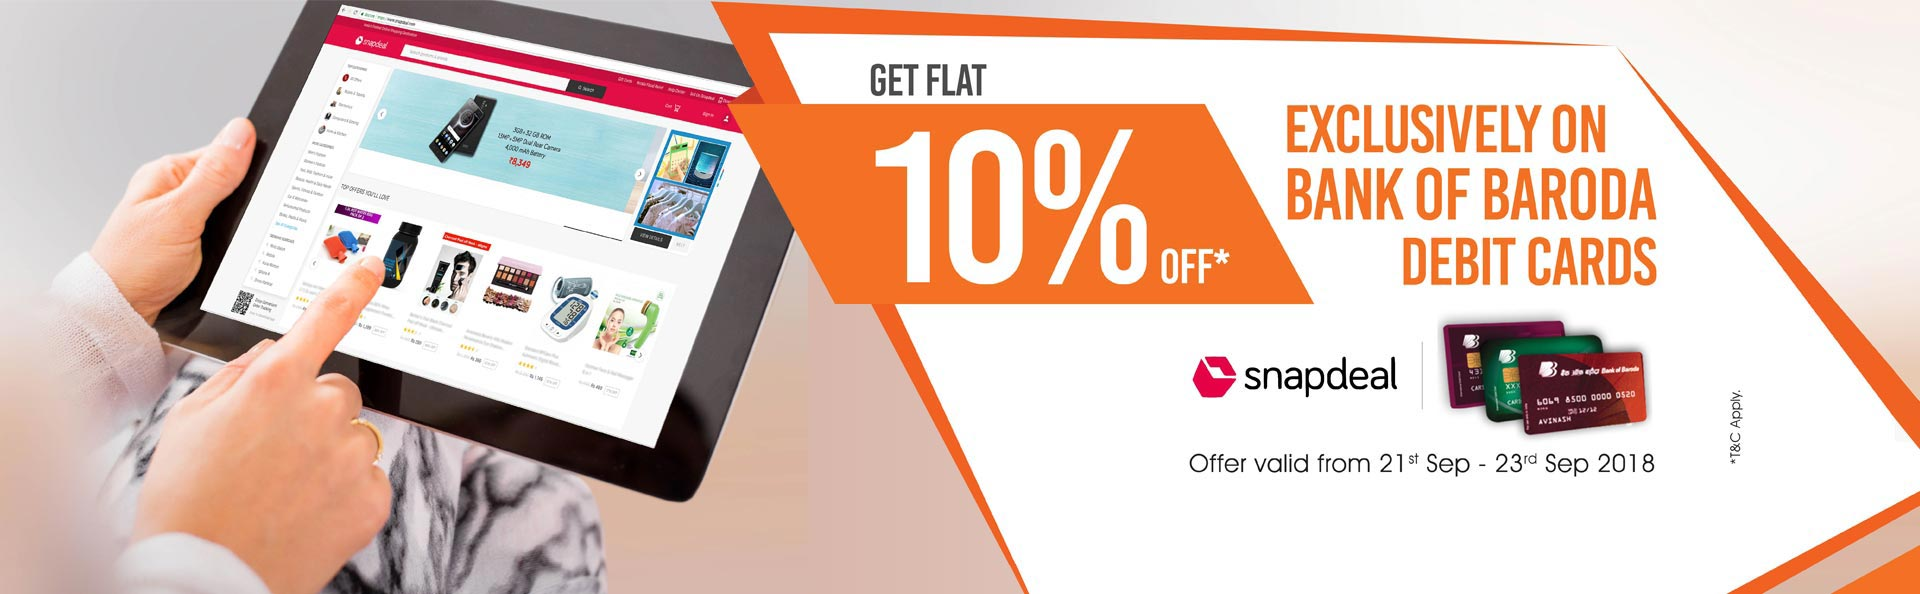 Offer on Bank of Baroda Debit Cards